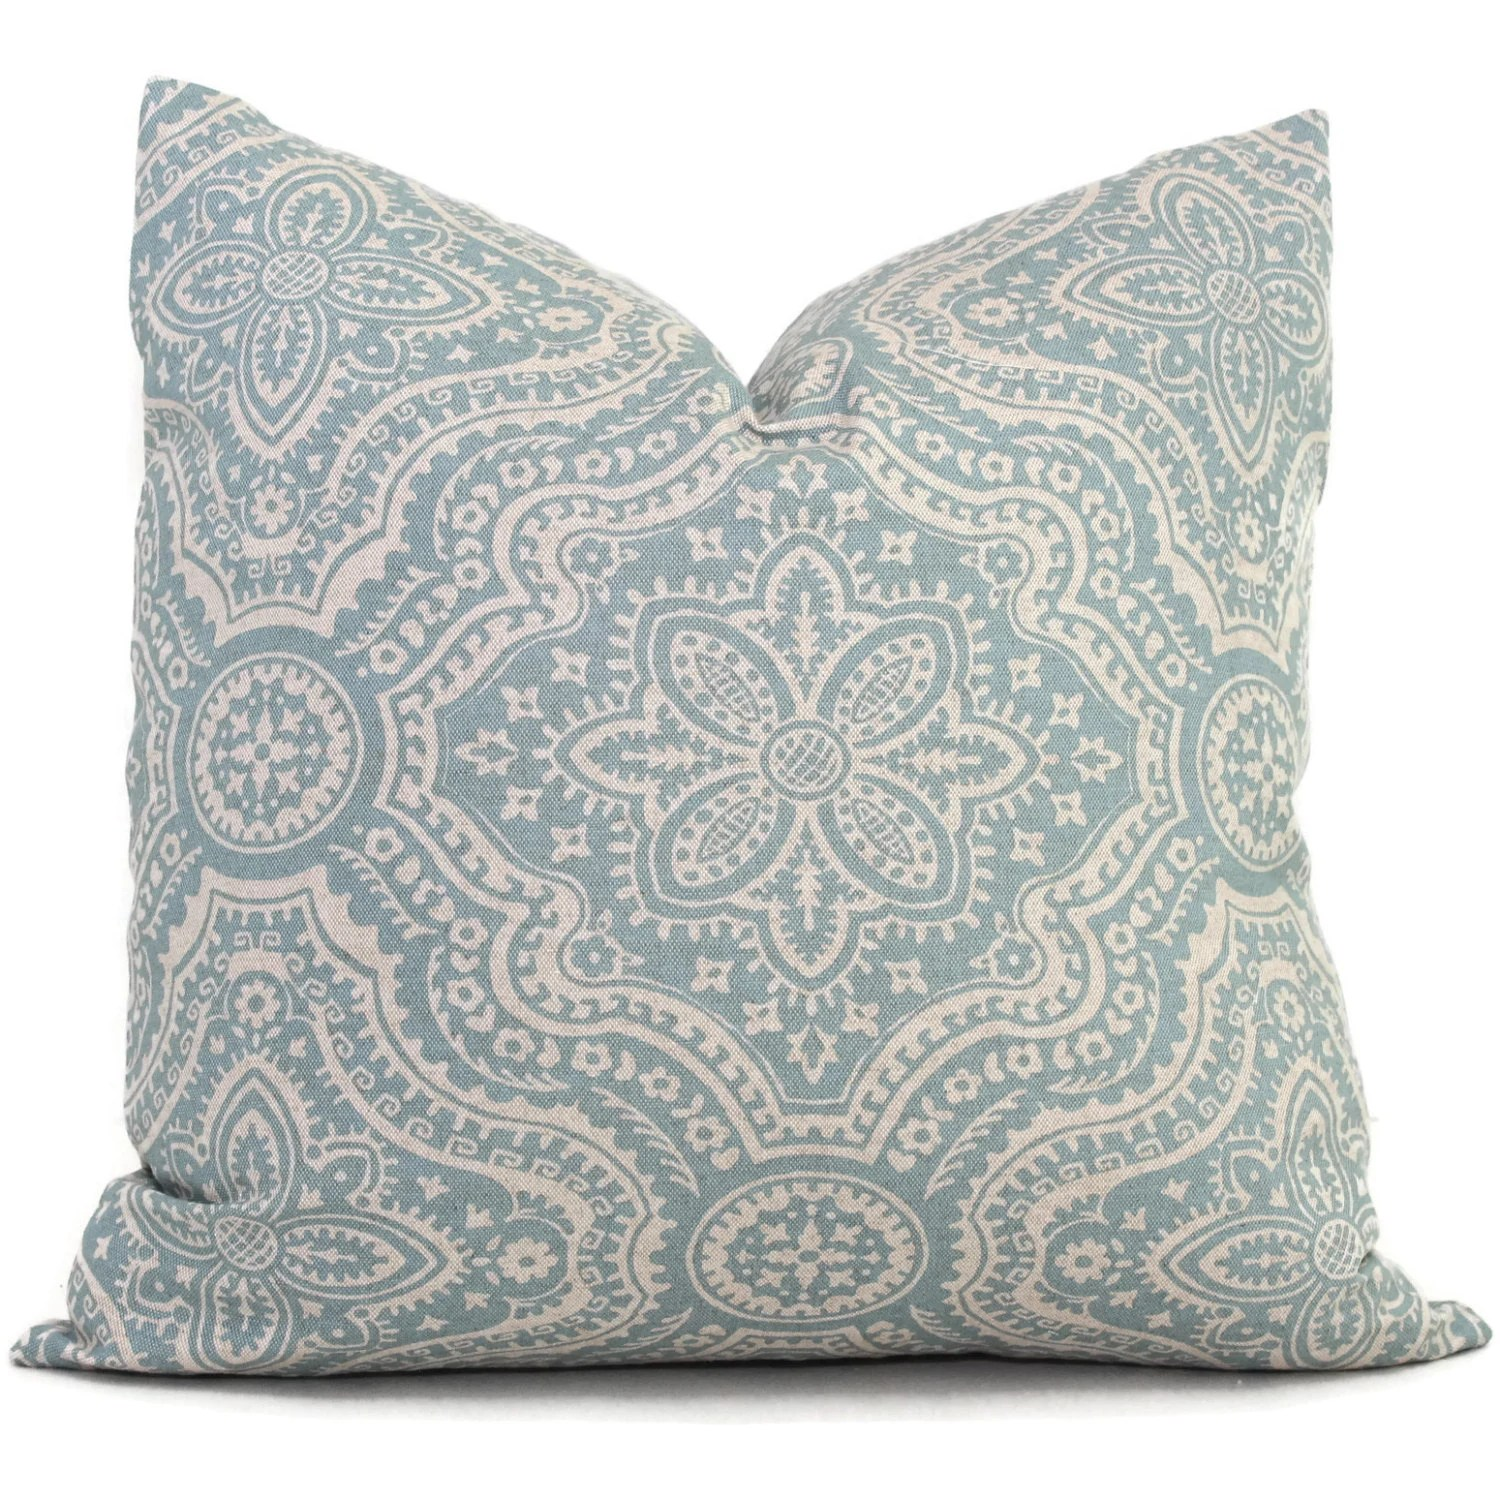 Best Aqua And Gray Damask Decorative Pillow Cover Square Eurosham This Month